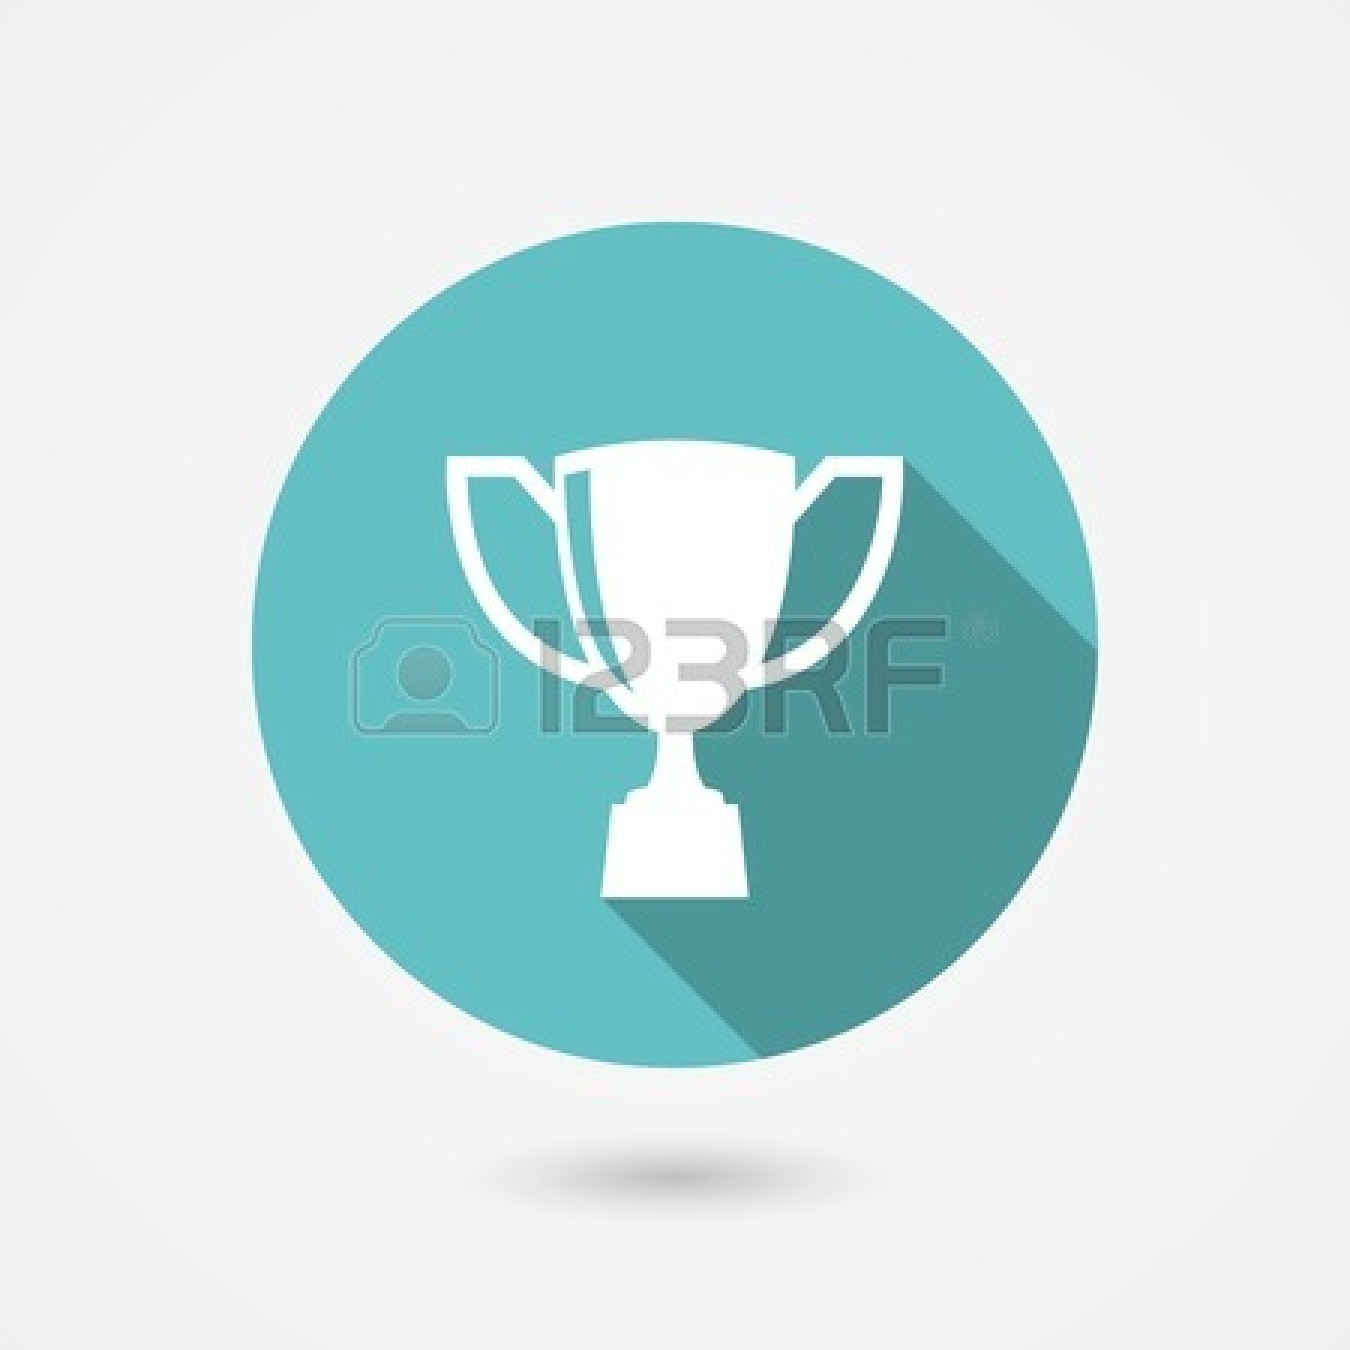 excellent icon : Trophy cup | Clipart Panda - Free Clipart ...